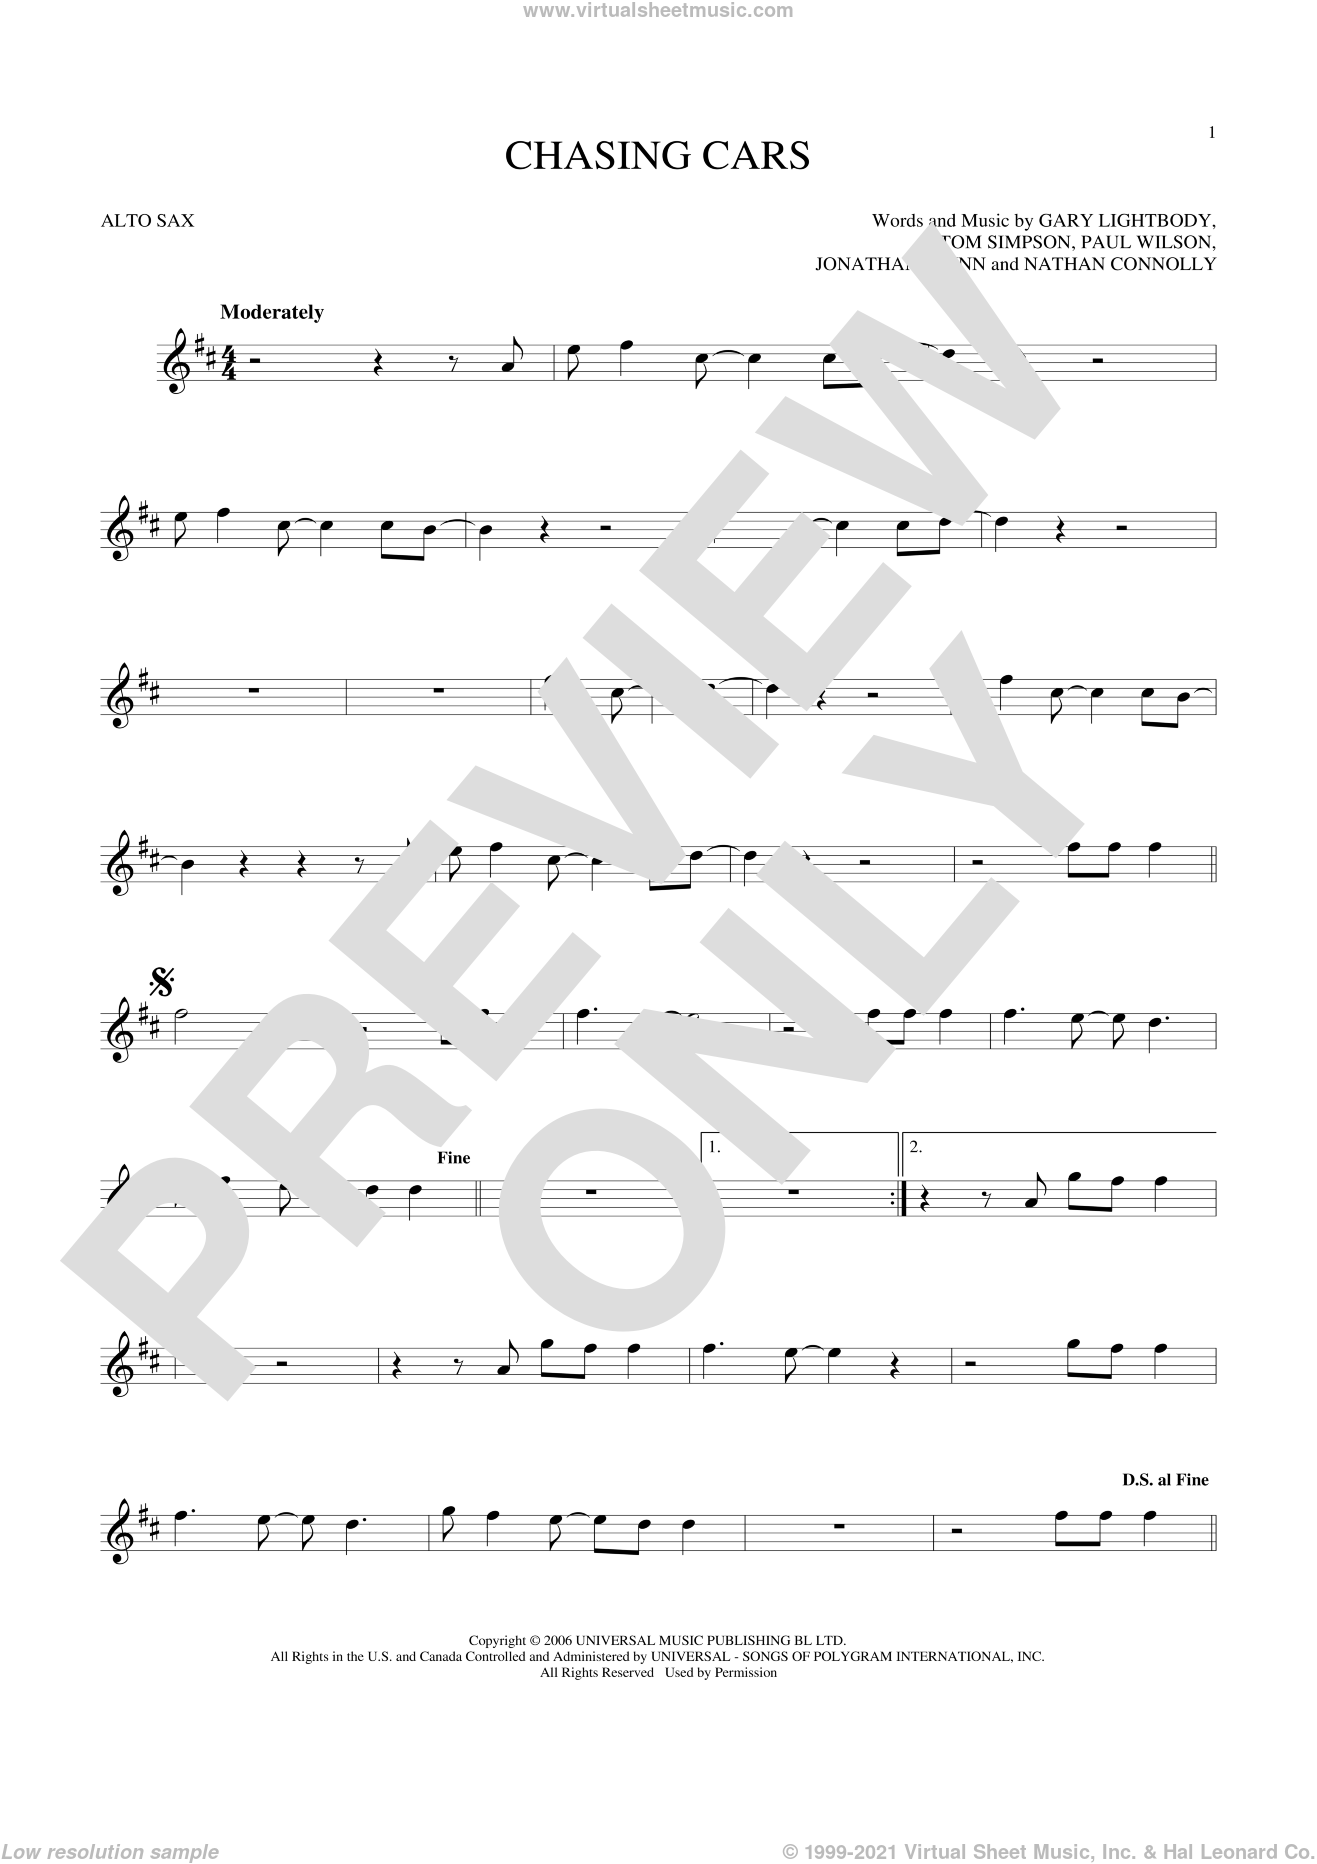 Chasing Cars sheet music for alto saxophone solo ( Sax) by Snow Patrol, Gary Lightbody, Jonathan Quinn, Nathan Connolly, Paul Wilson and Tom Simpson, intermediate alto saxophone ( Sax)